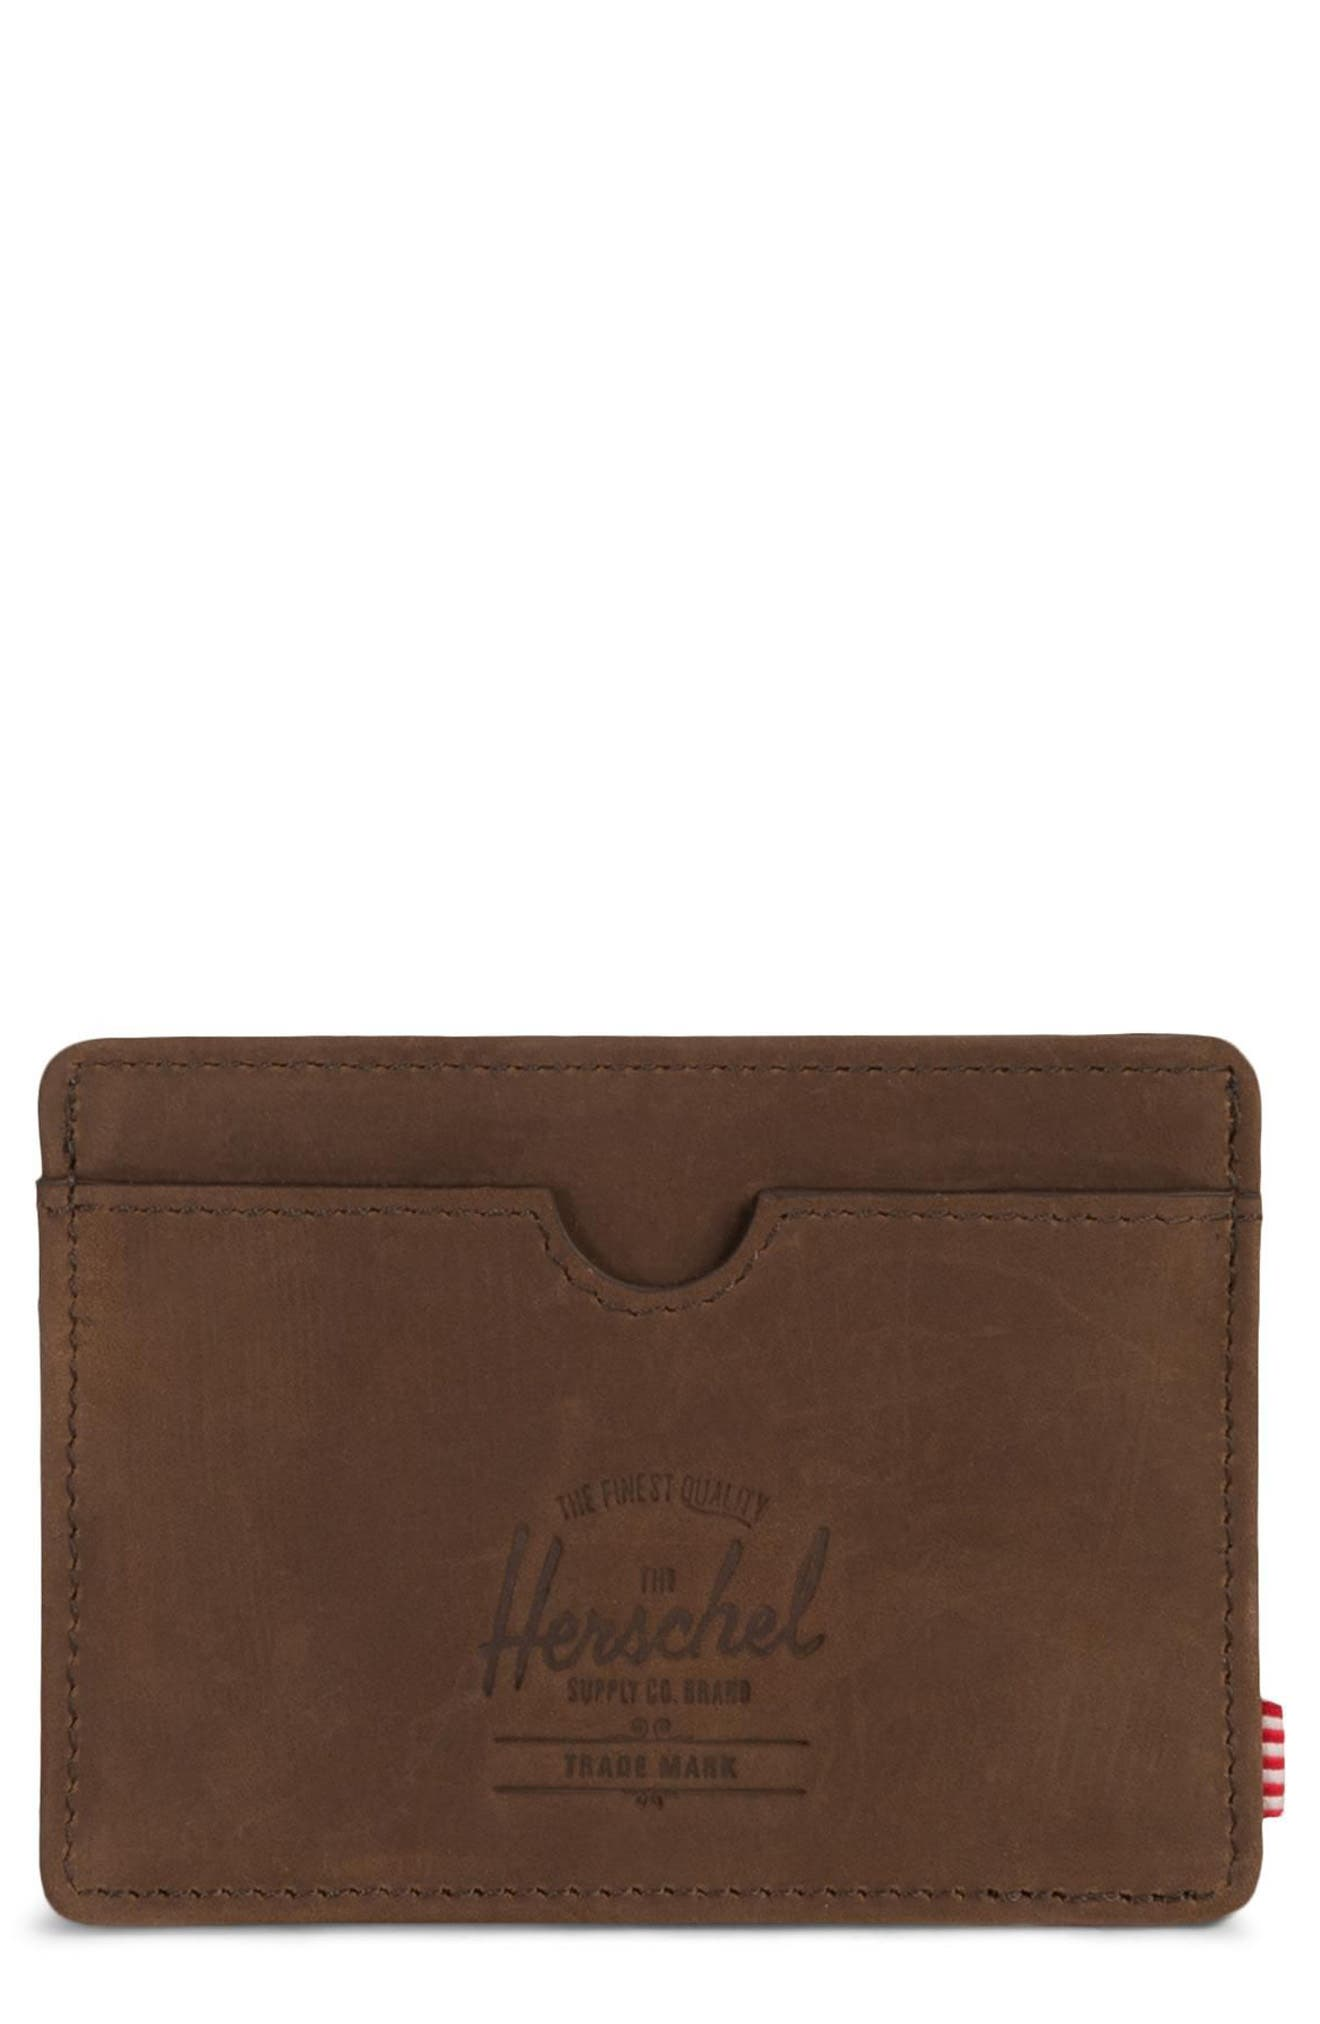 HERSCHEL SUPPLY CO., Charlie Nubuck Leather Card Case, Main thumbnail 1, color, NUBUCK BROWN